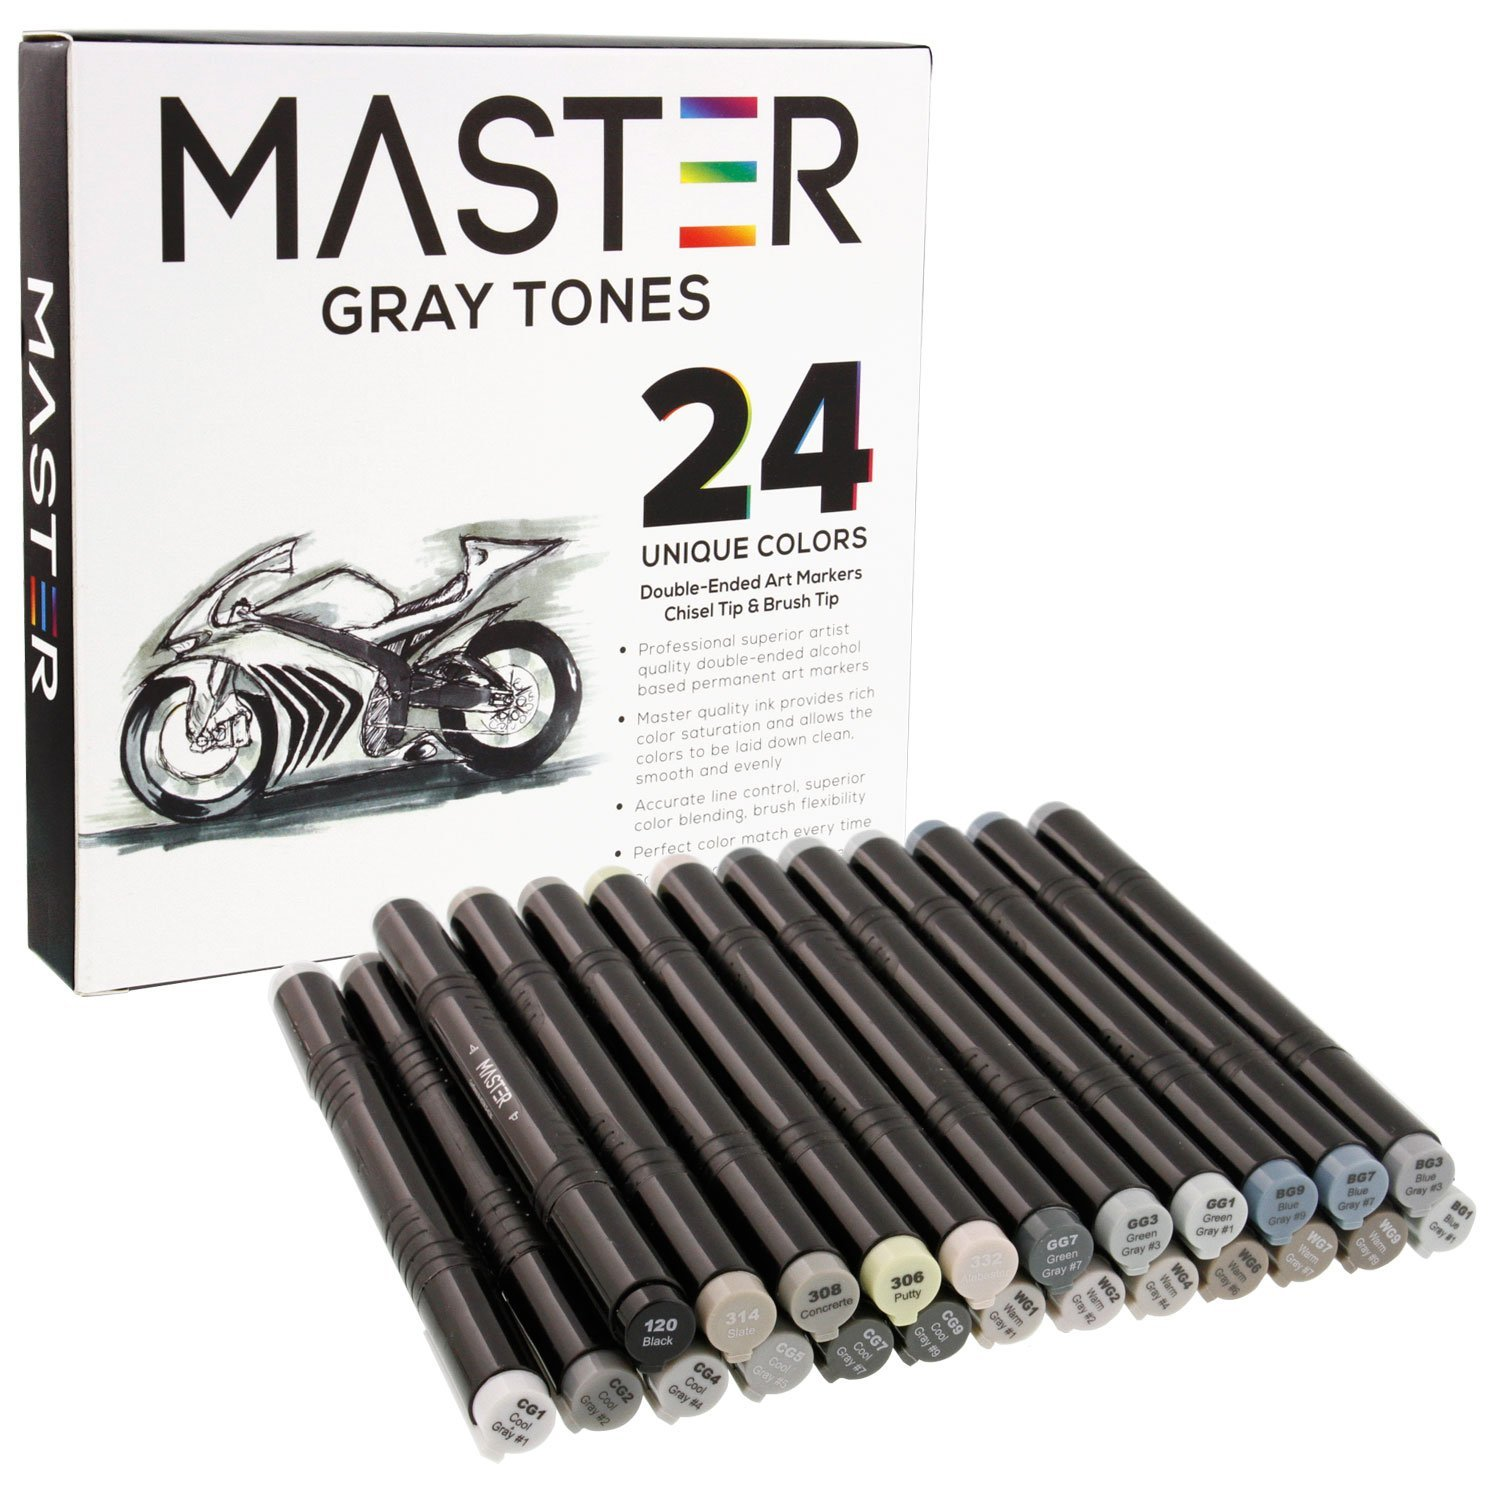 24 Color Master Markers Gray Tones Dual Tip Set Double-Ended Grayscale Art Markers with Chisel Point and Standard Brush